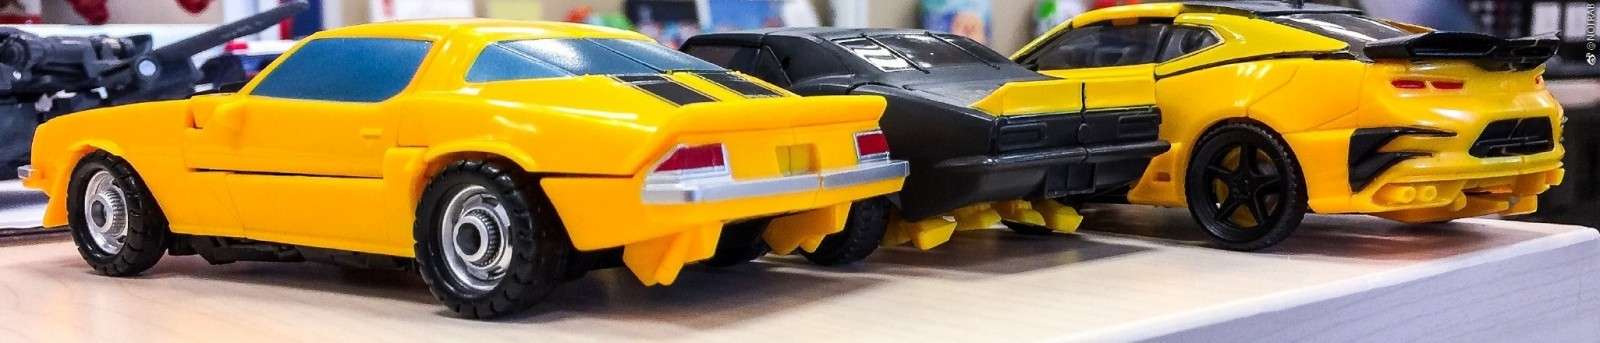 Transformers News: First Image of Car Modes from Transformers Bumblebee Evolution Three Pack